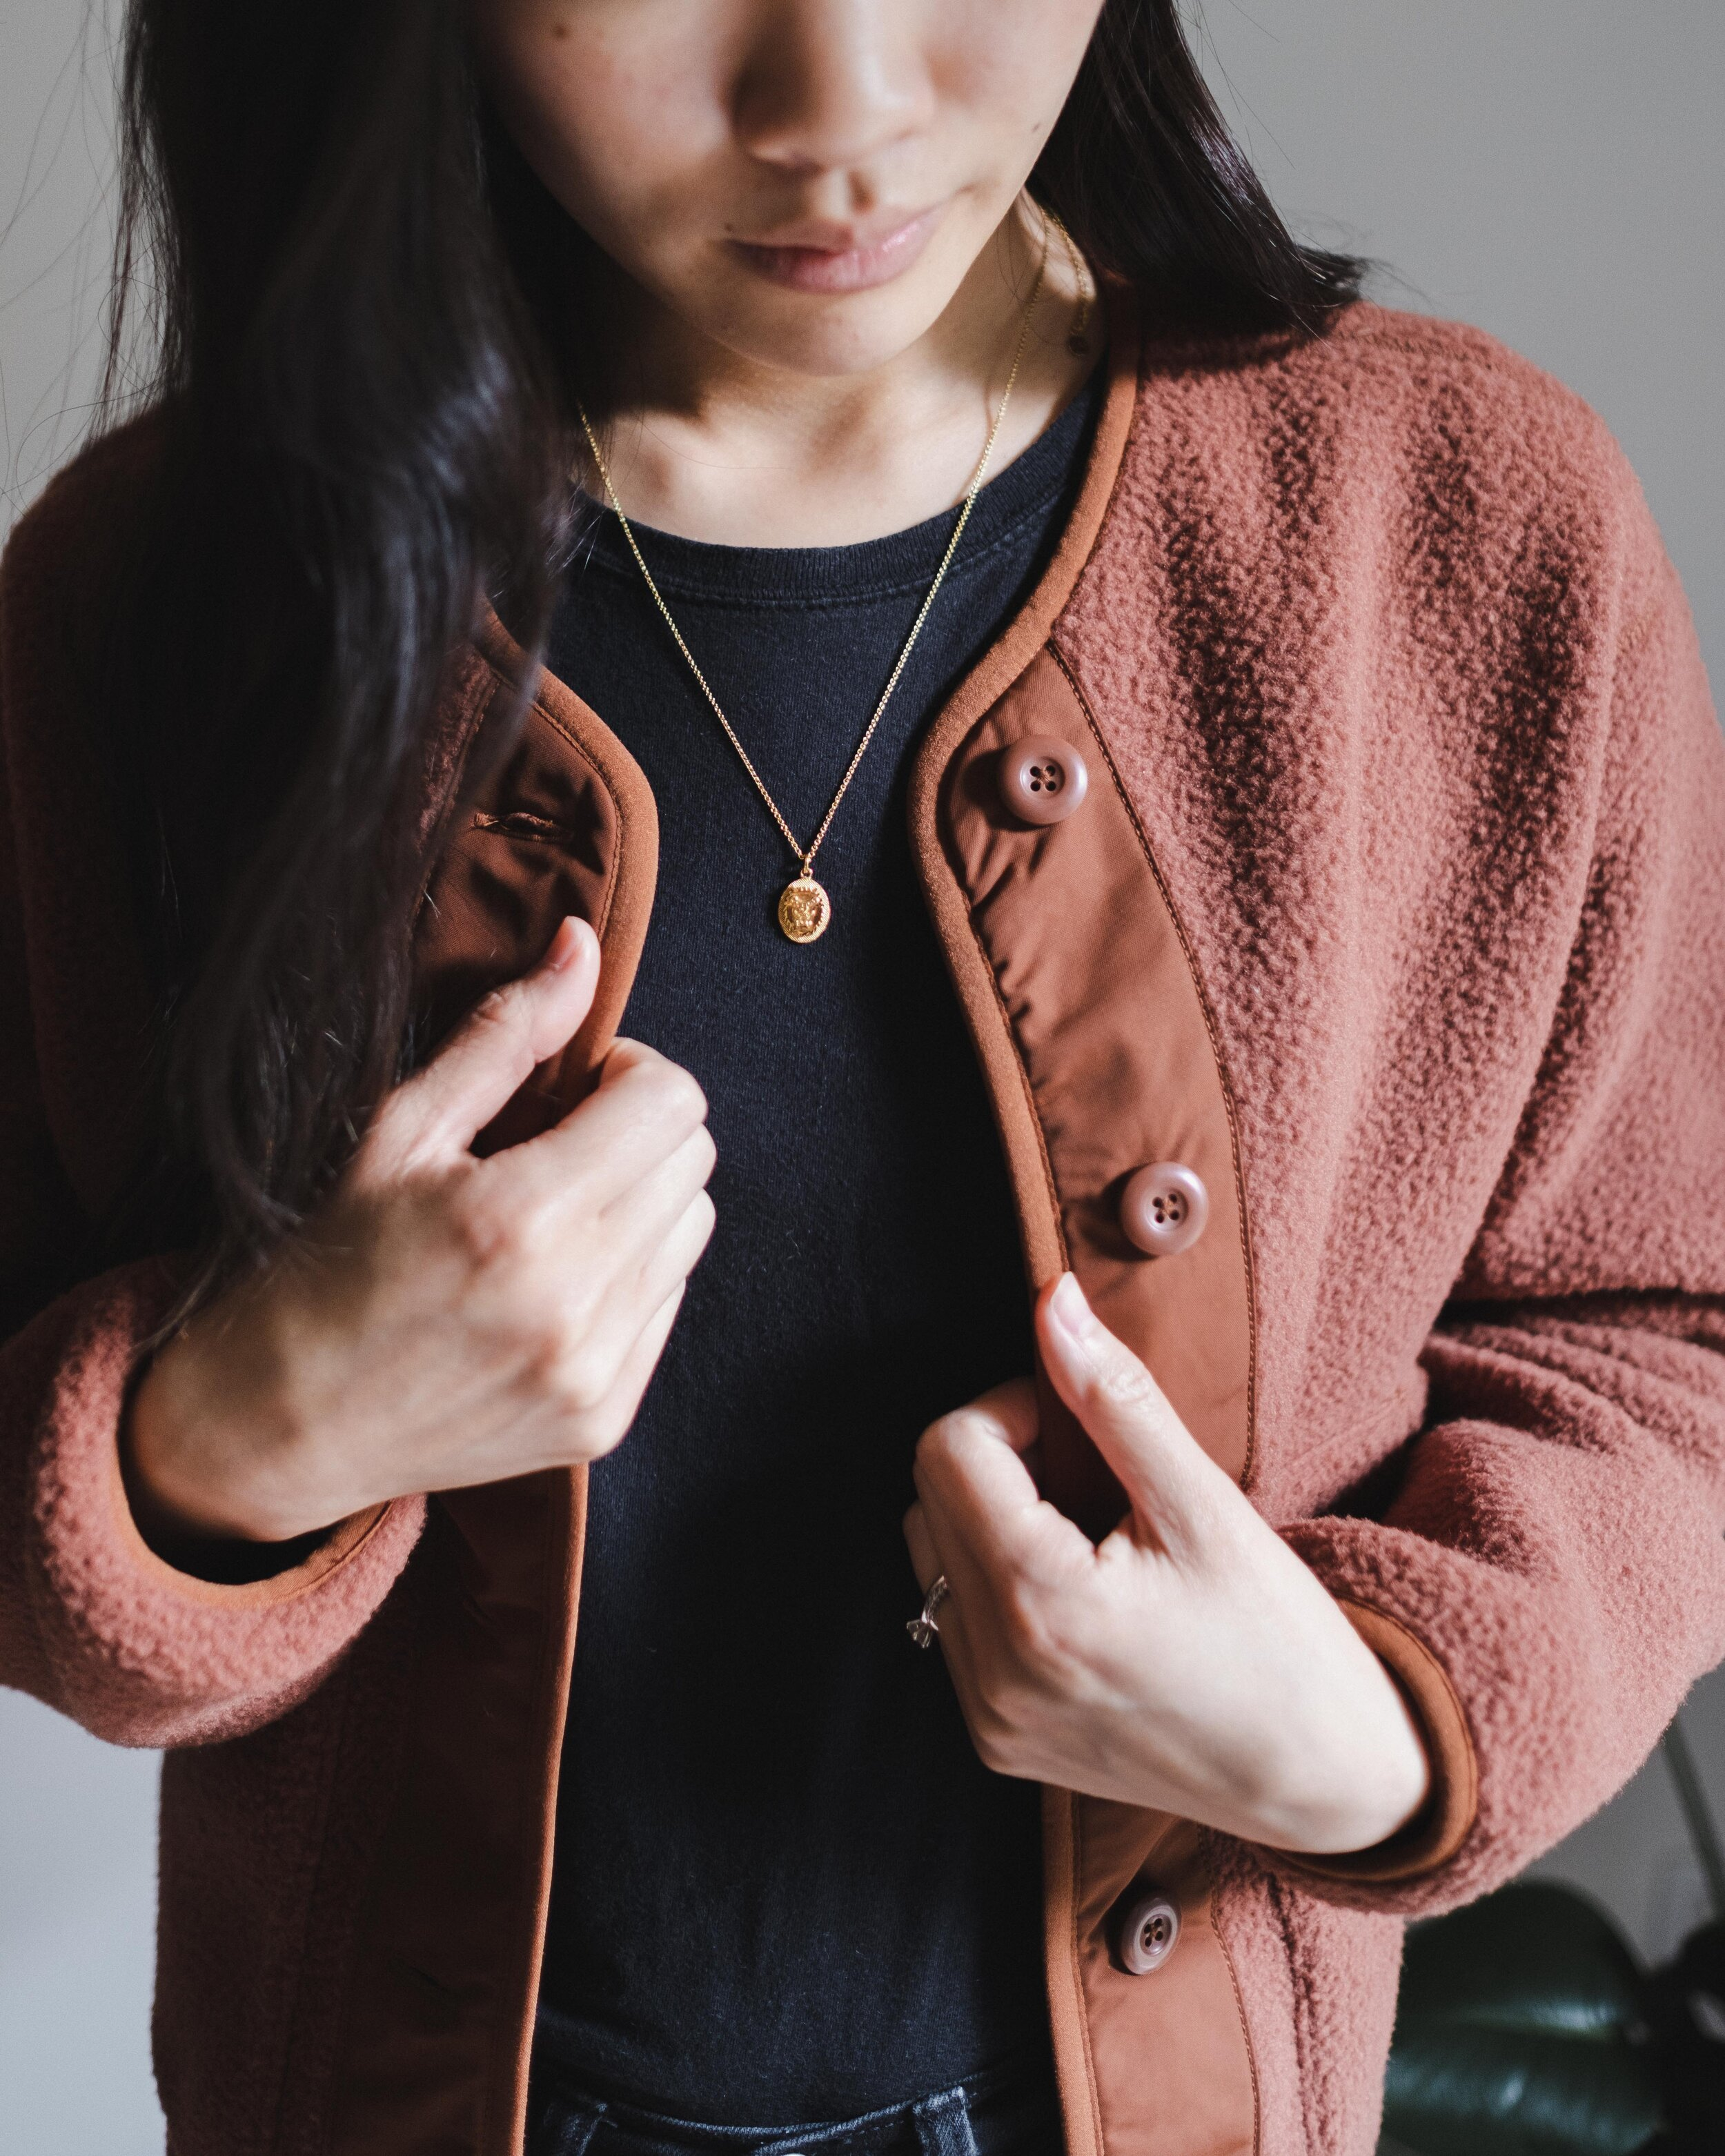 Fleece Jacket: Everlane  |  Necklace: Mejuri